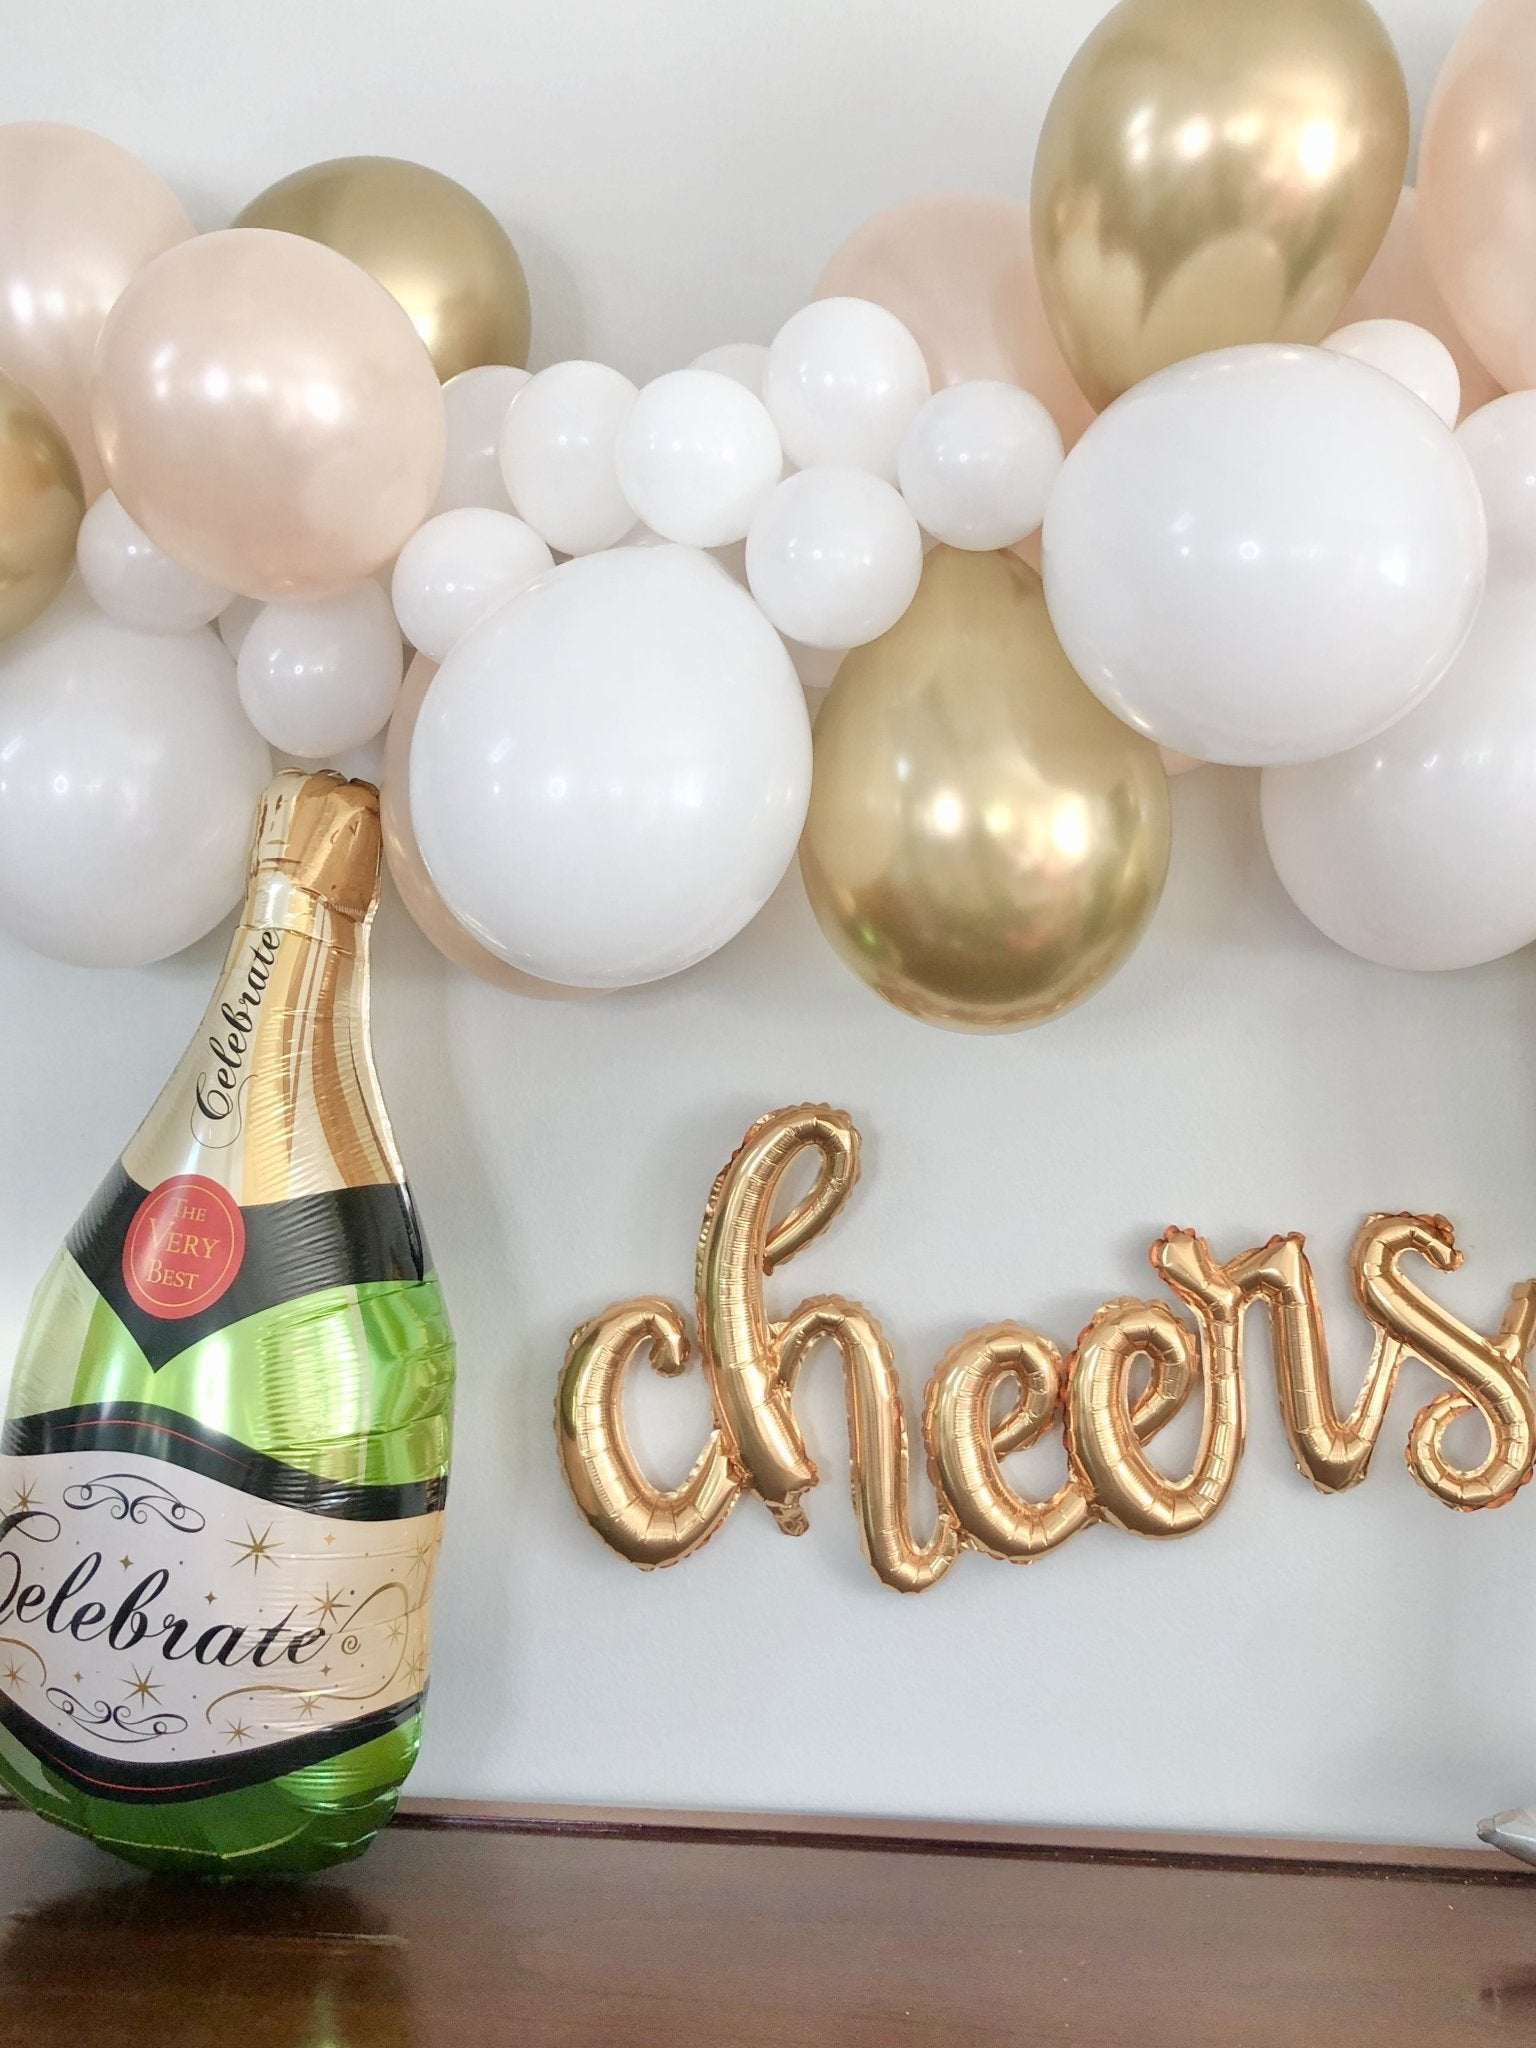 Champagne Bottle Balloon Graduation Champagne Balloon Engagement Party Bachelorette Party Decor Bridal Shower Birthday Decorations